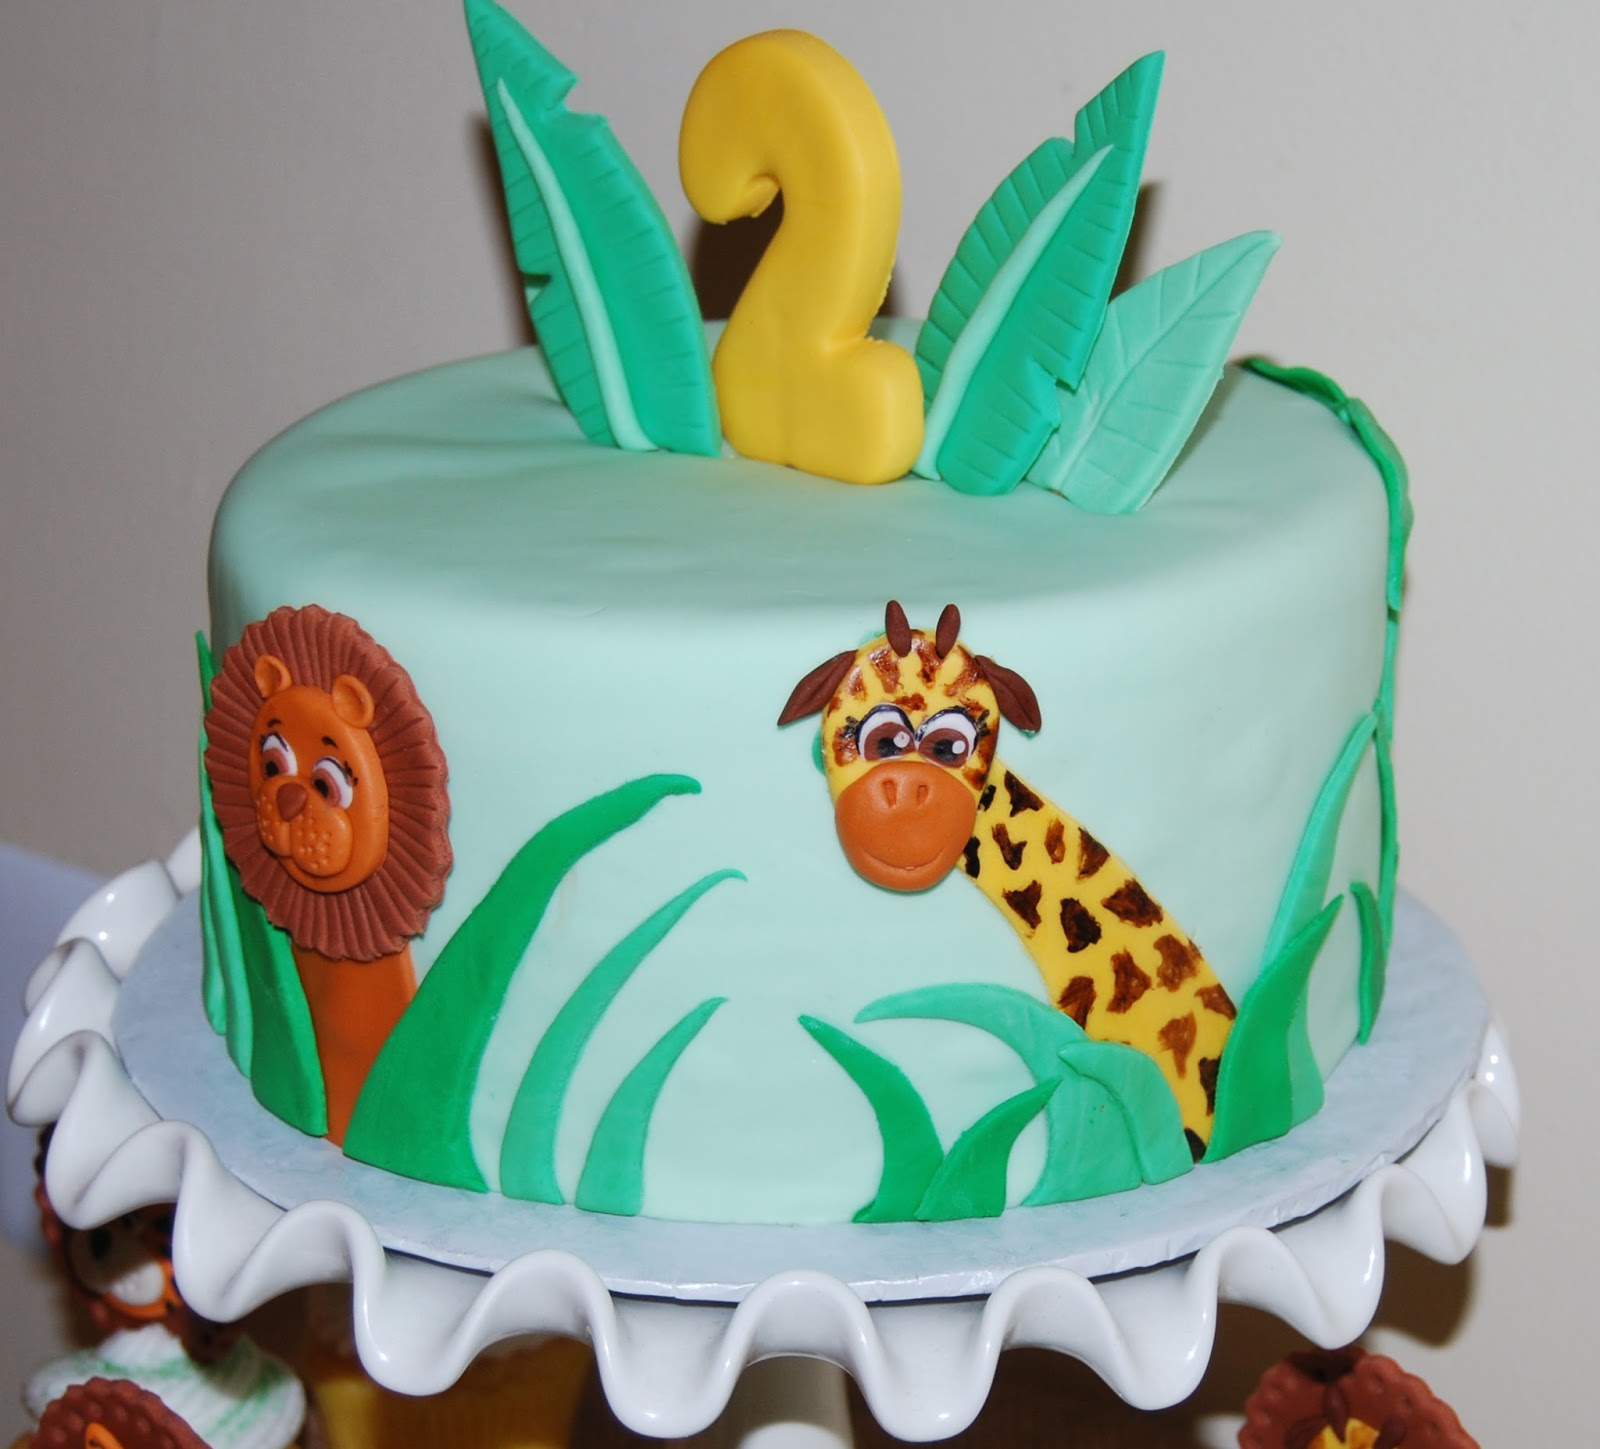 Cake Images With Name Rohan : Leelees Cake-abilities: Jungle Cake and Cupcakes